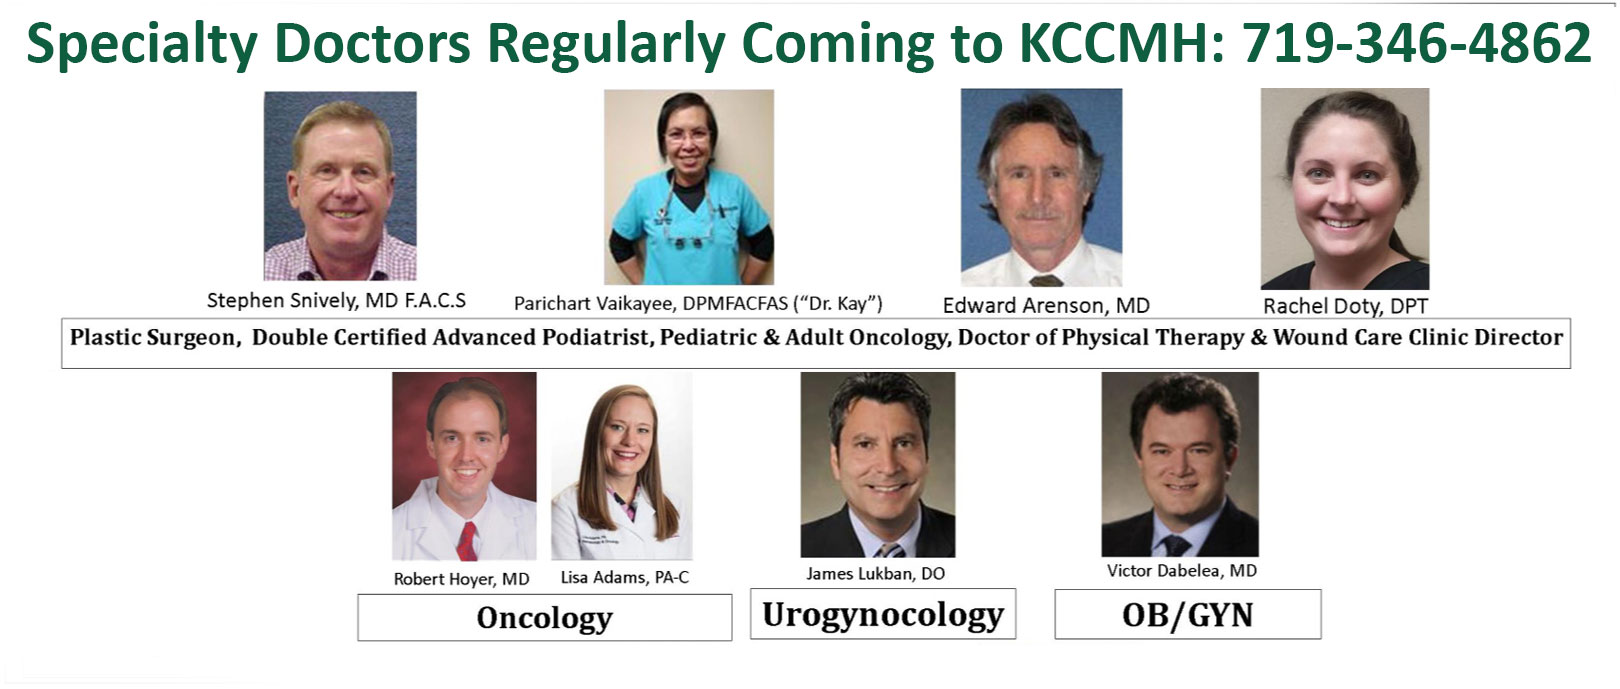 Specialty Doctors regularly coming to KCCMH: 719-346-4862